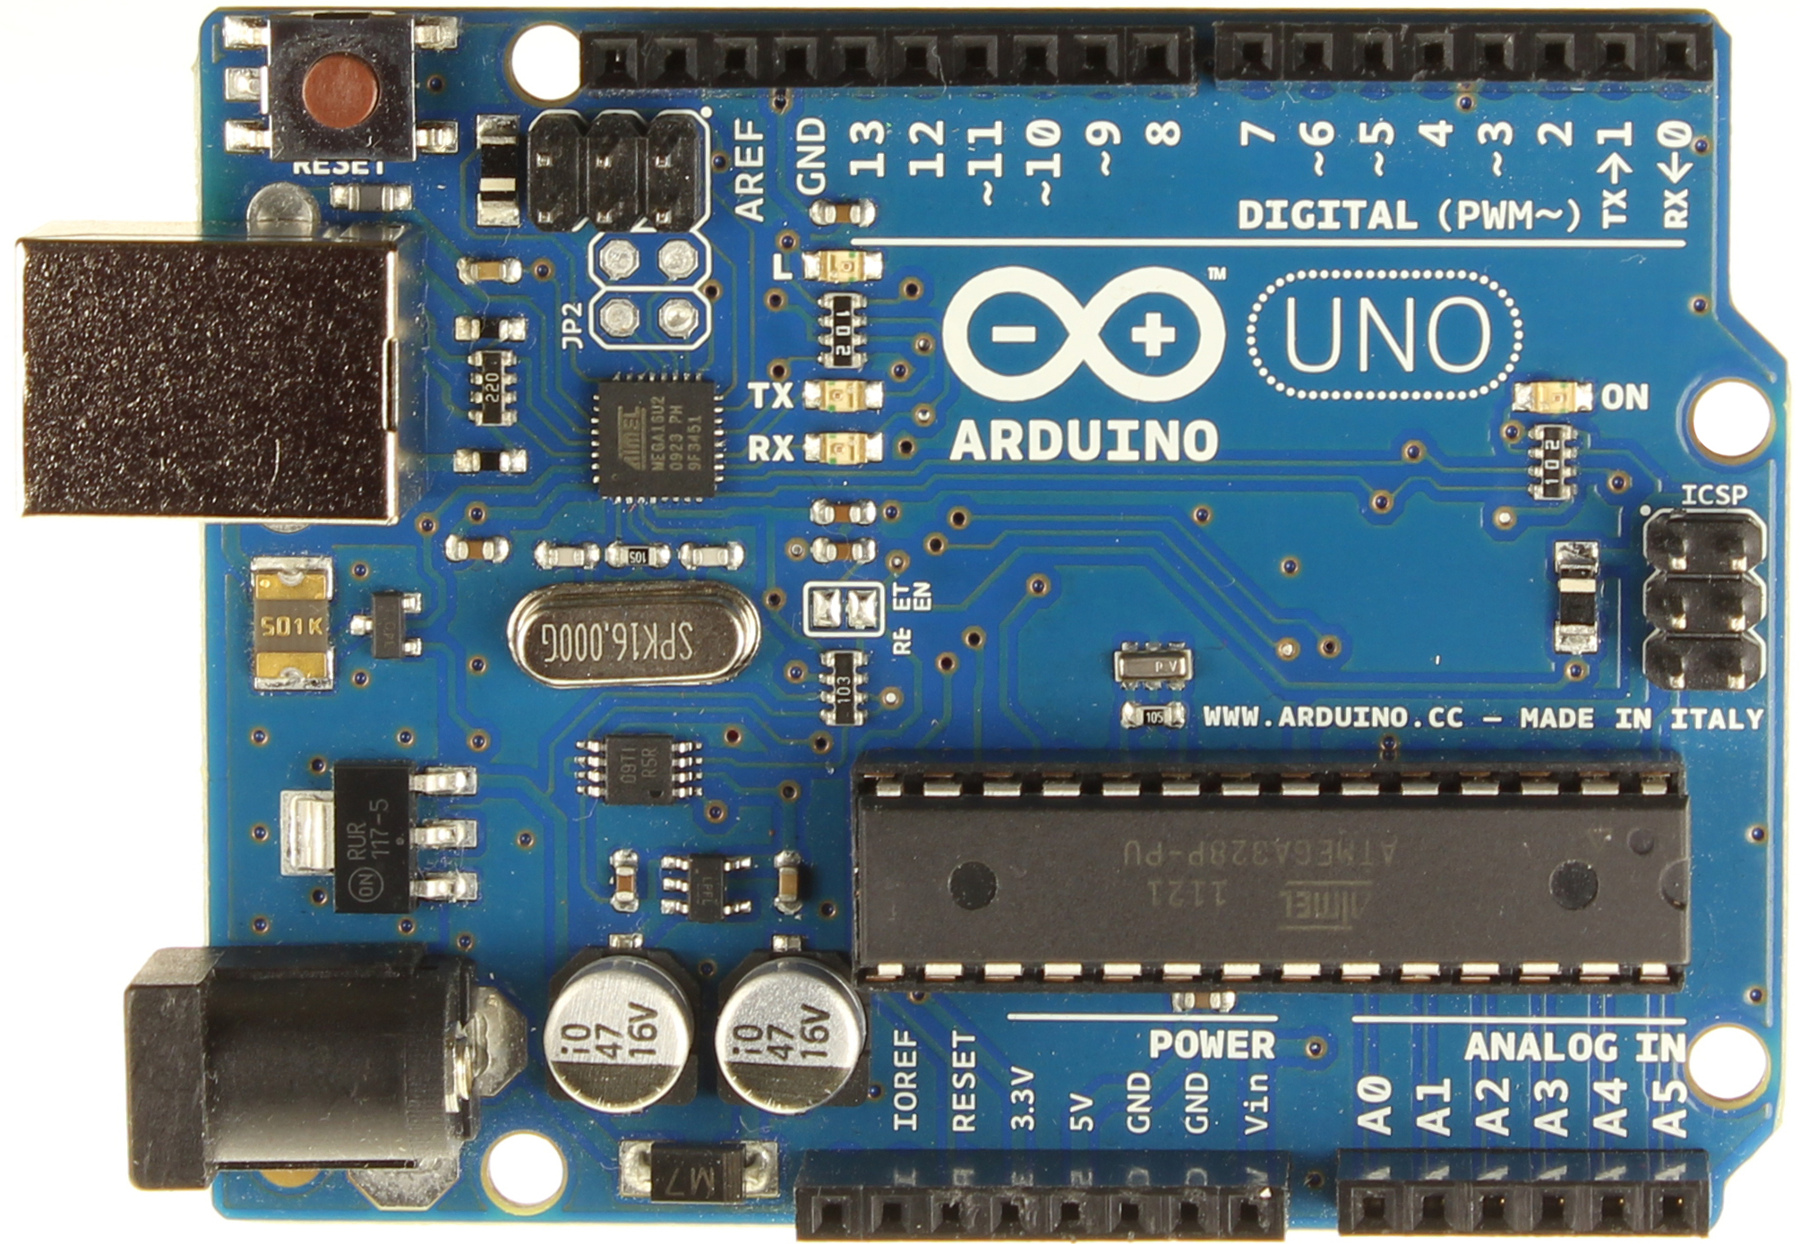 Robokart Arduino Uno R3 2 Channel 12V Relay Starter Kit With 18 Basic  Arduino Projects